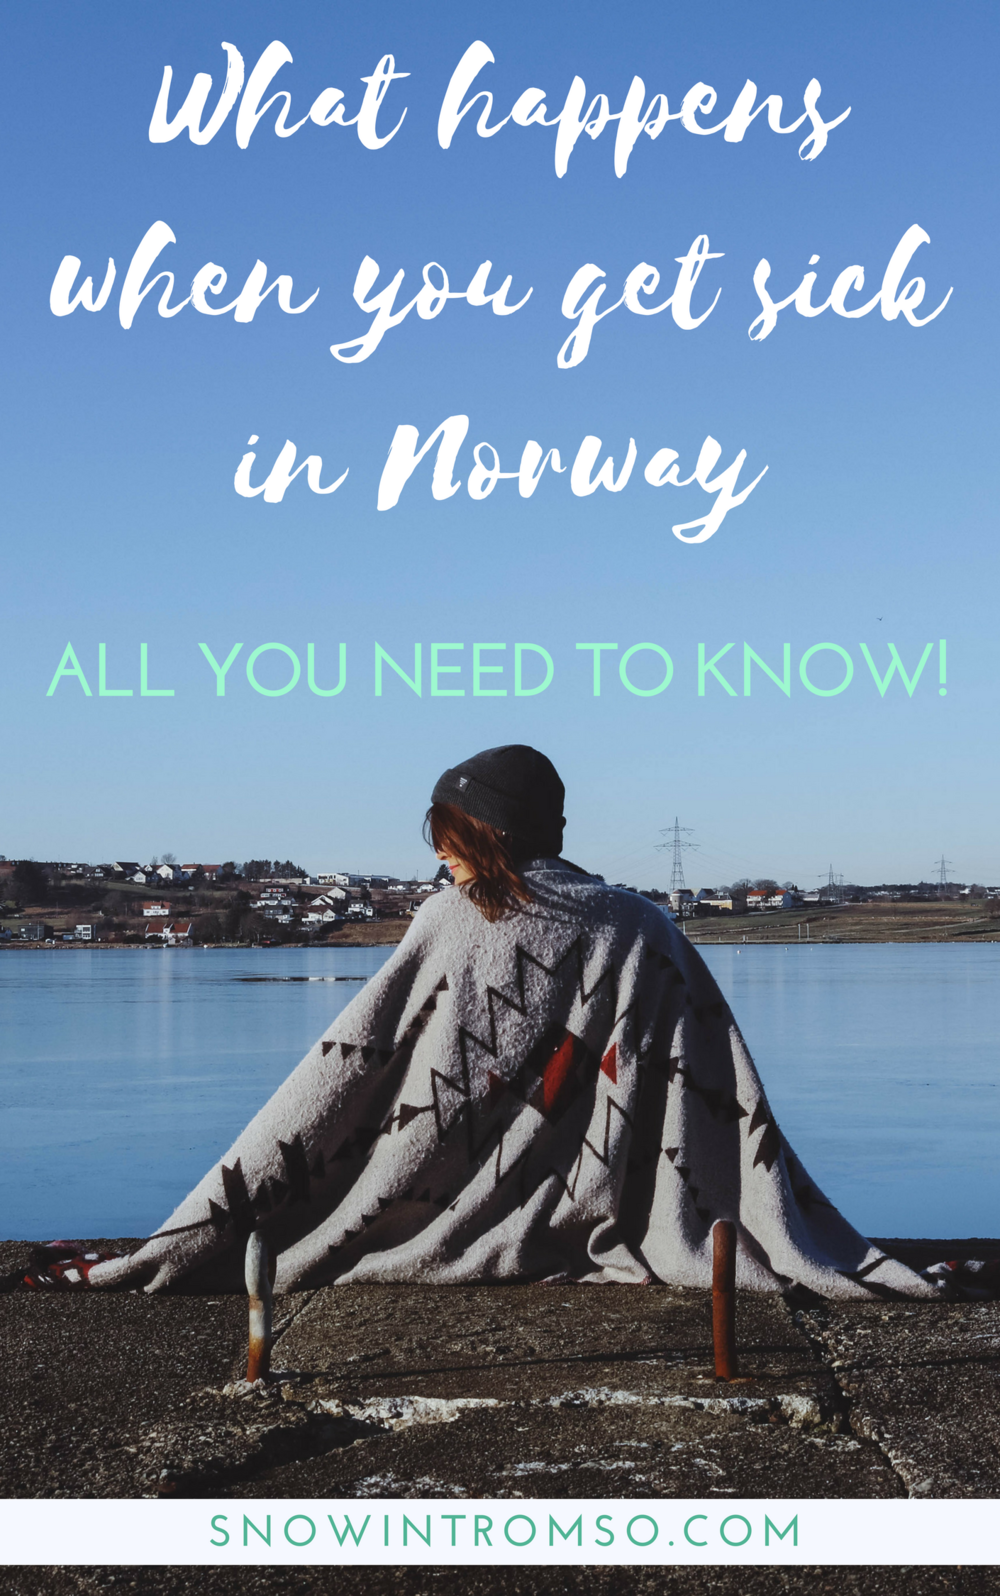 What happens when you get sick in Norway - read all about it on the blog!